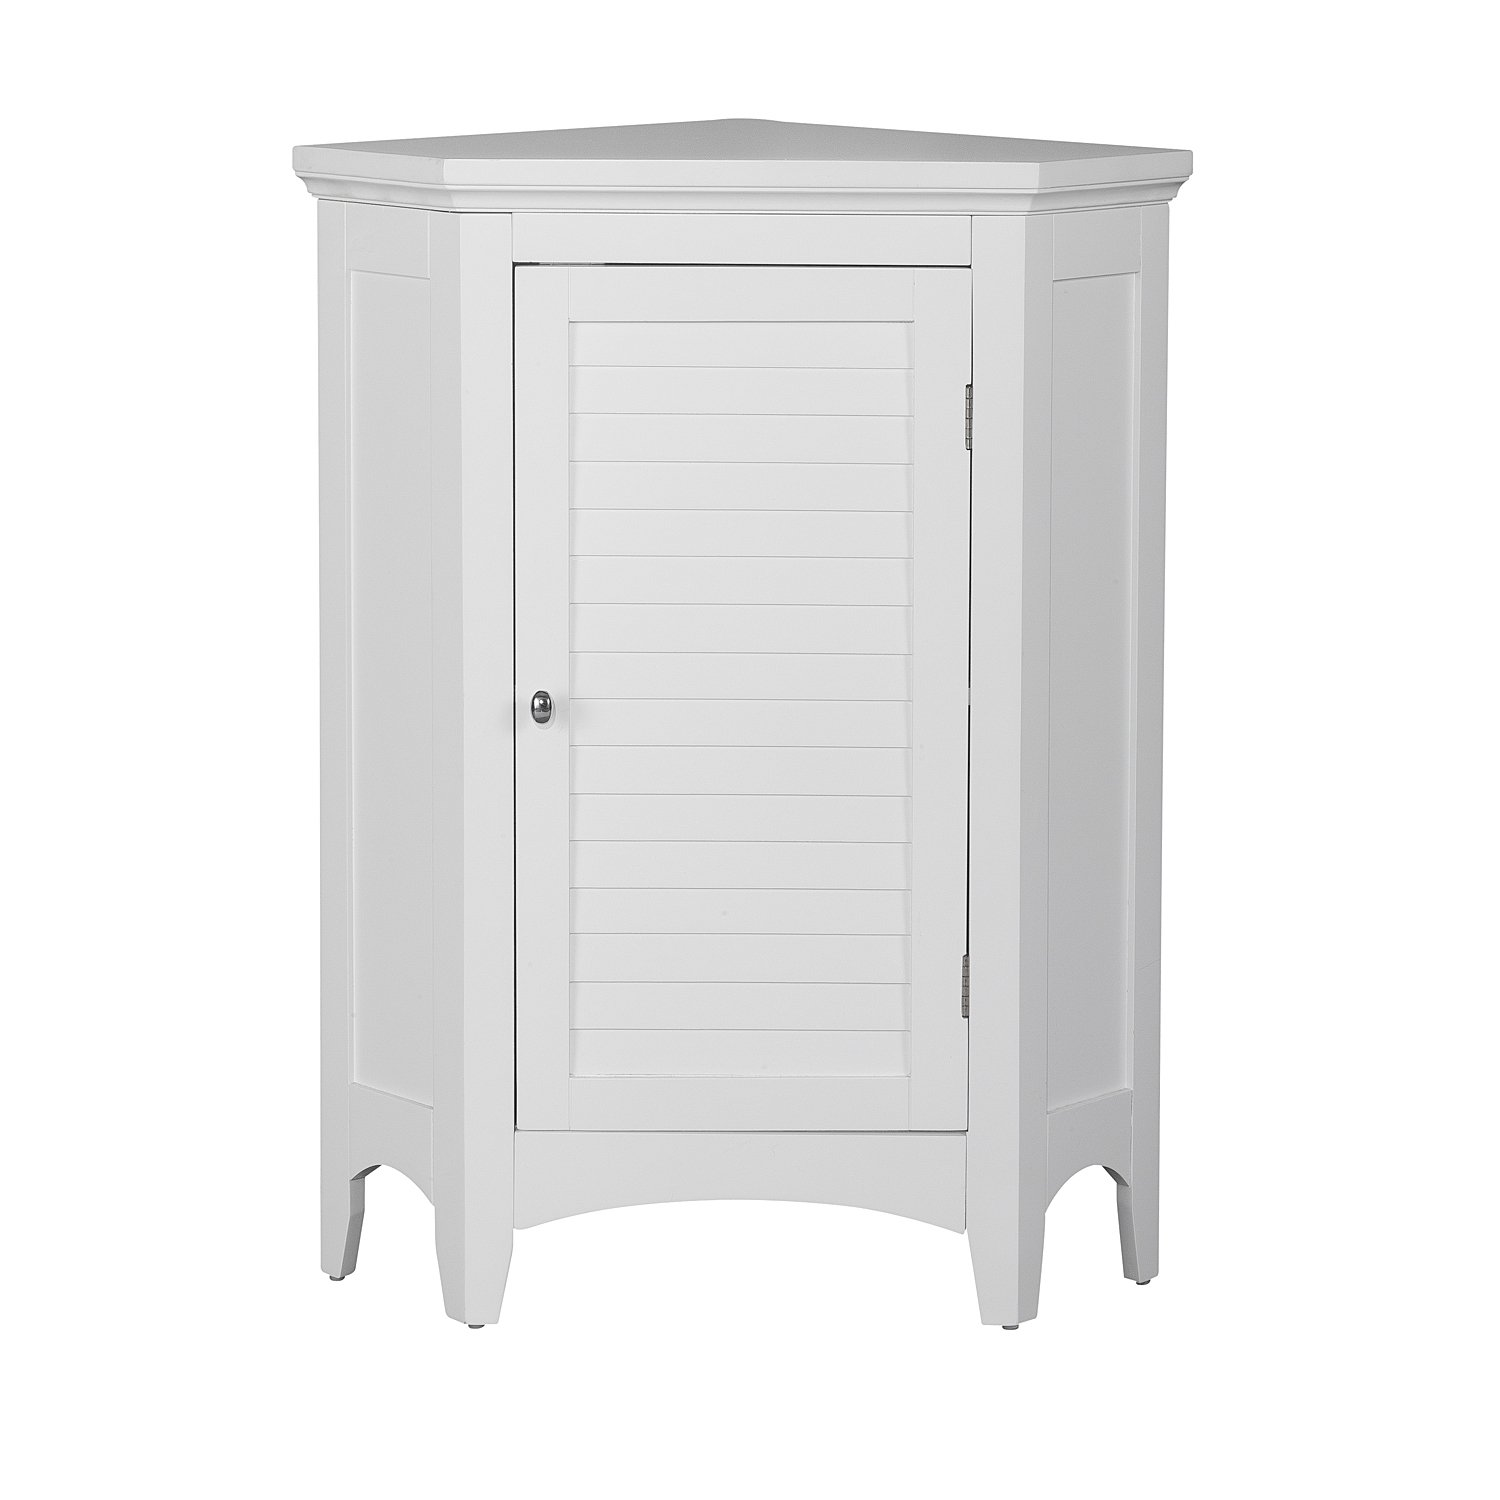 Elegant Home Fashions Adriana Corner Floor Cabinet with 1-Shutter Door